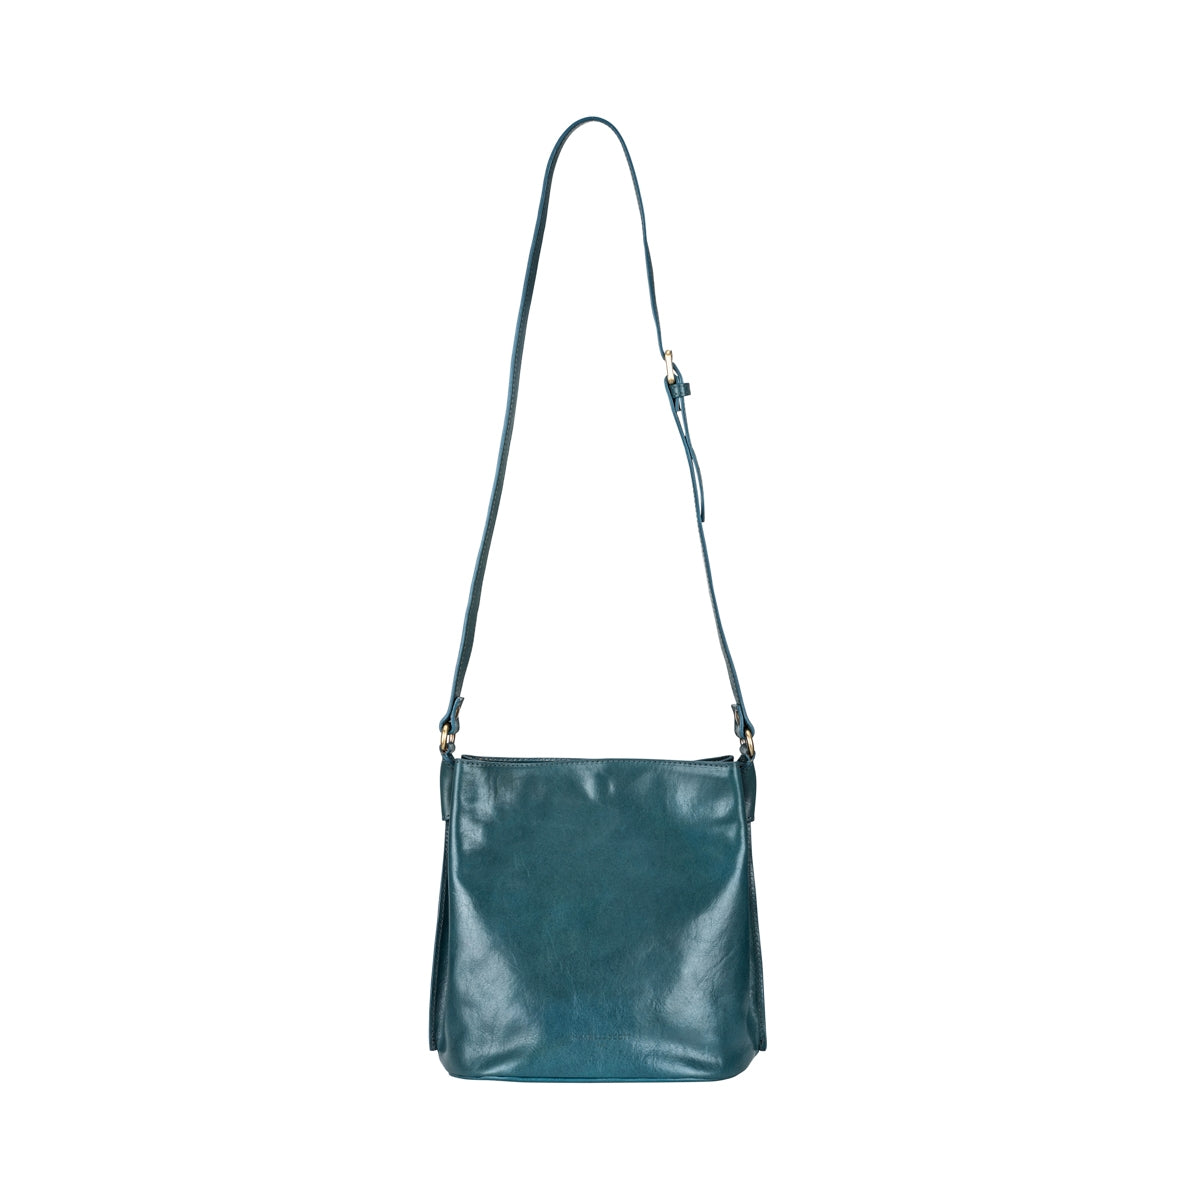 Image 4 of the 'Palermo' Petrol Leather Ladies Bucket Bag Handbag